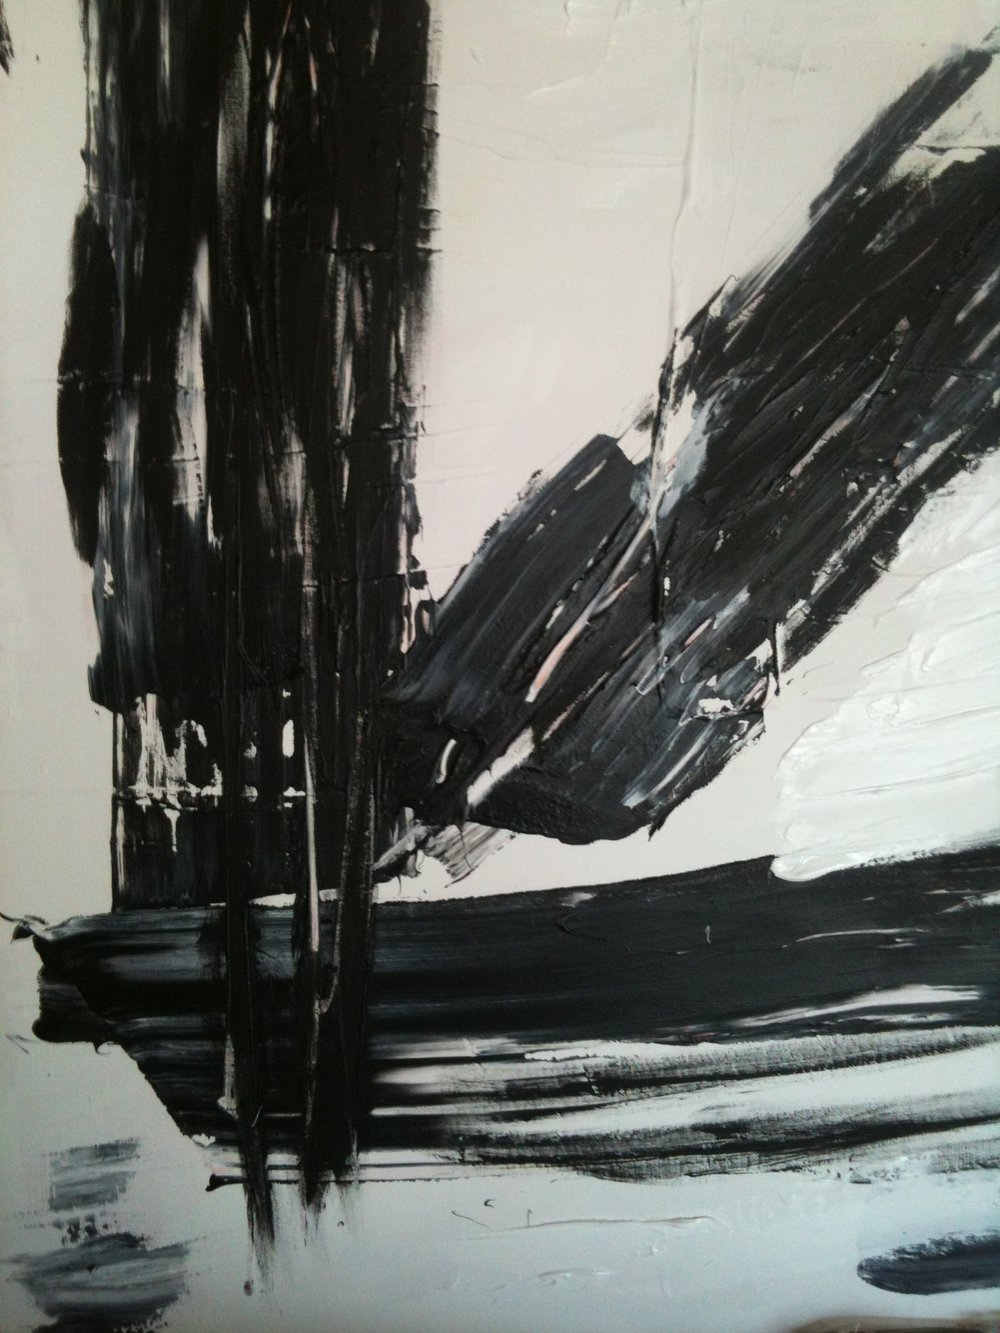 black series no. 1 / acrylic on canvas / 40 in. x 32 in.